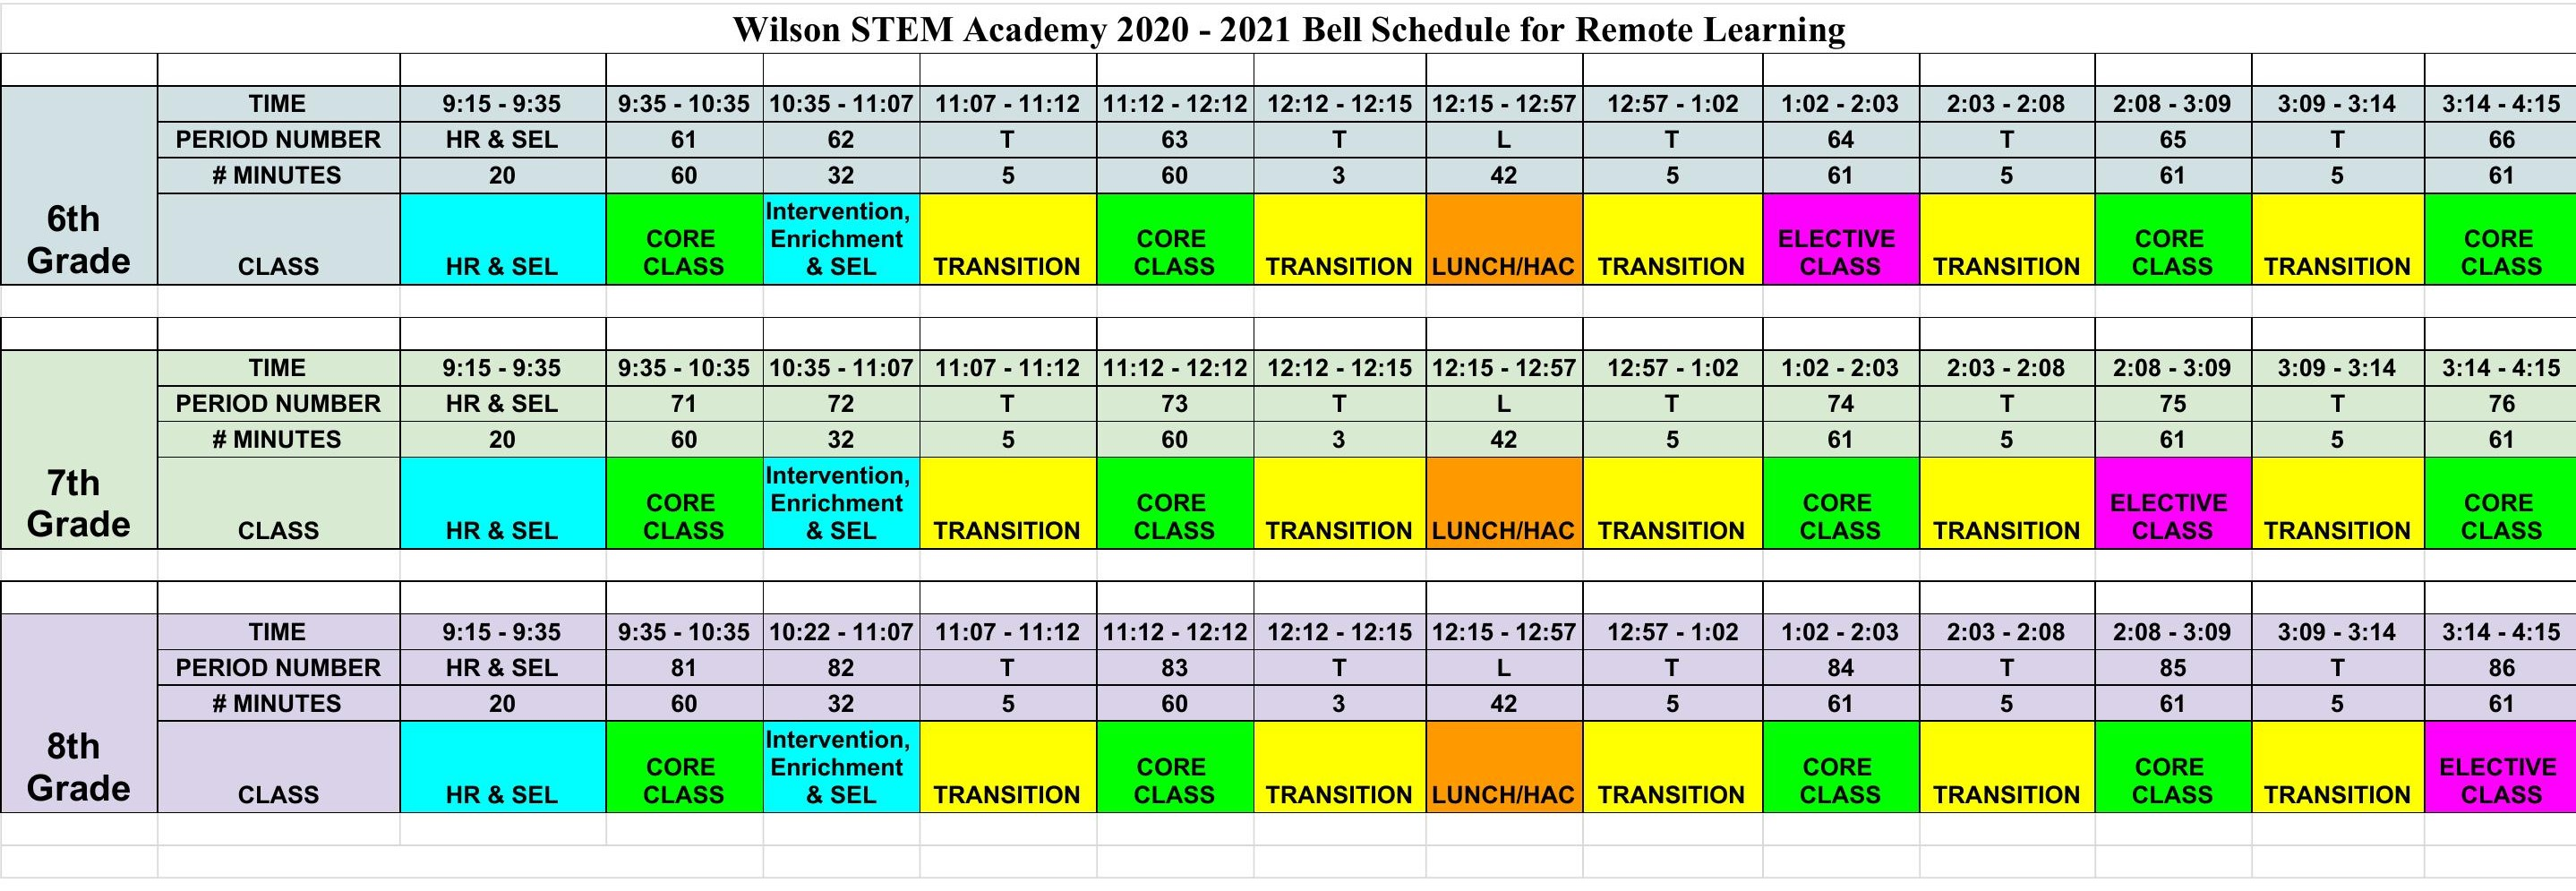 Wilson STEM Academy 2020-2021 Bell Schedule for Remote Learning - Sheet1.jpg